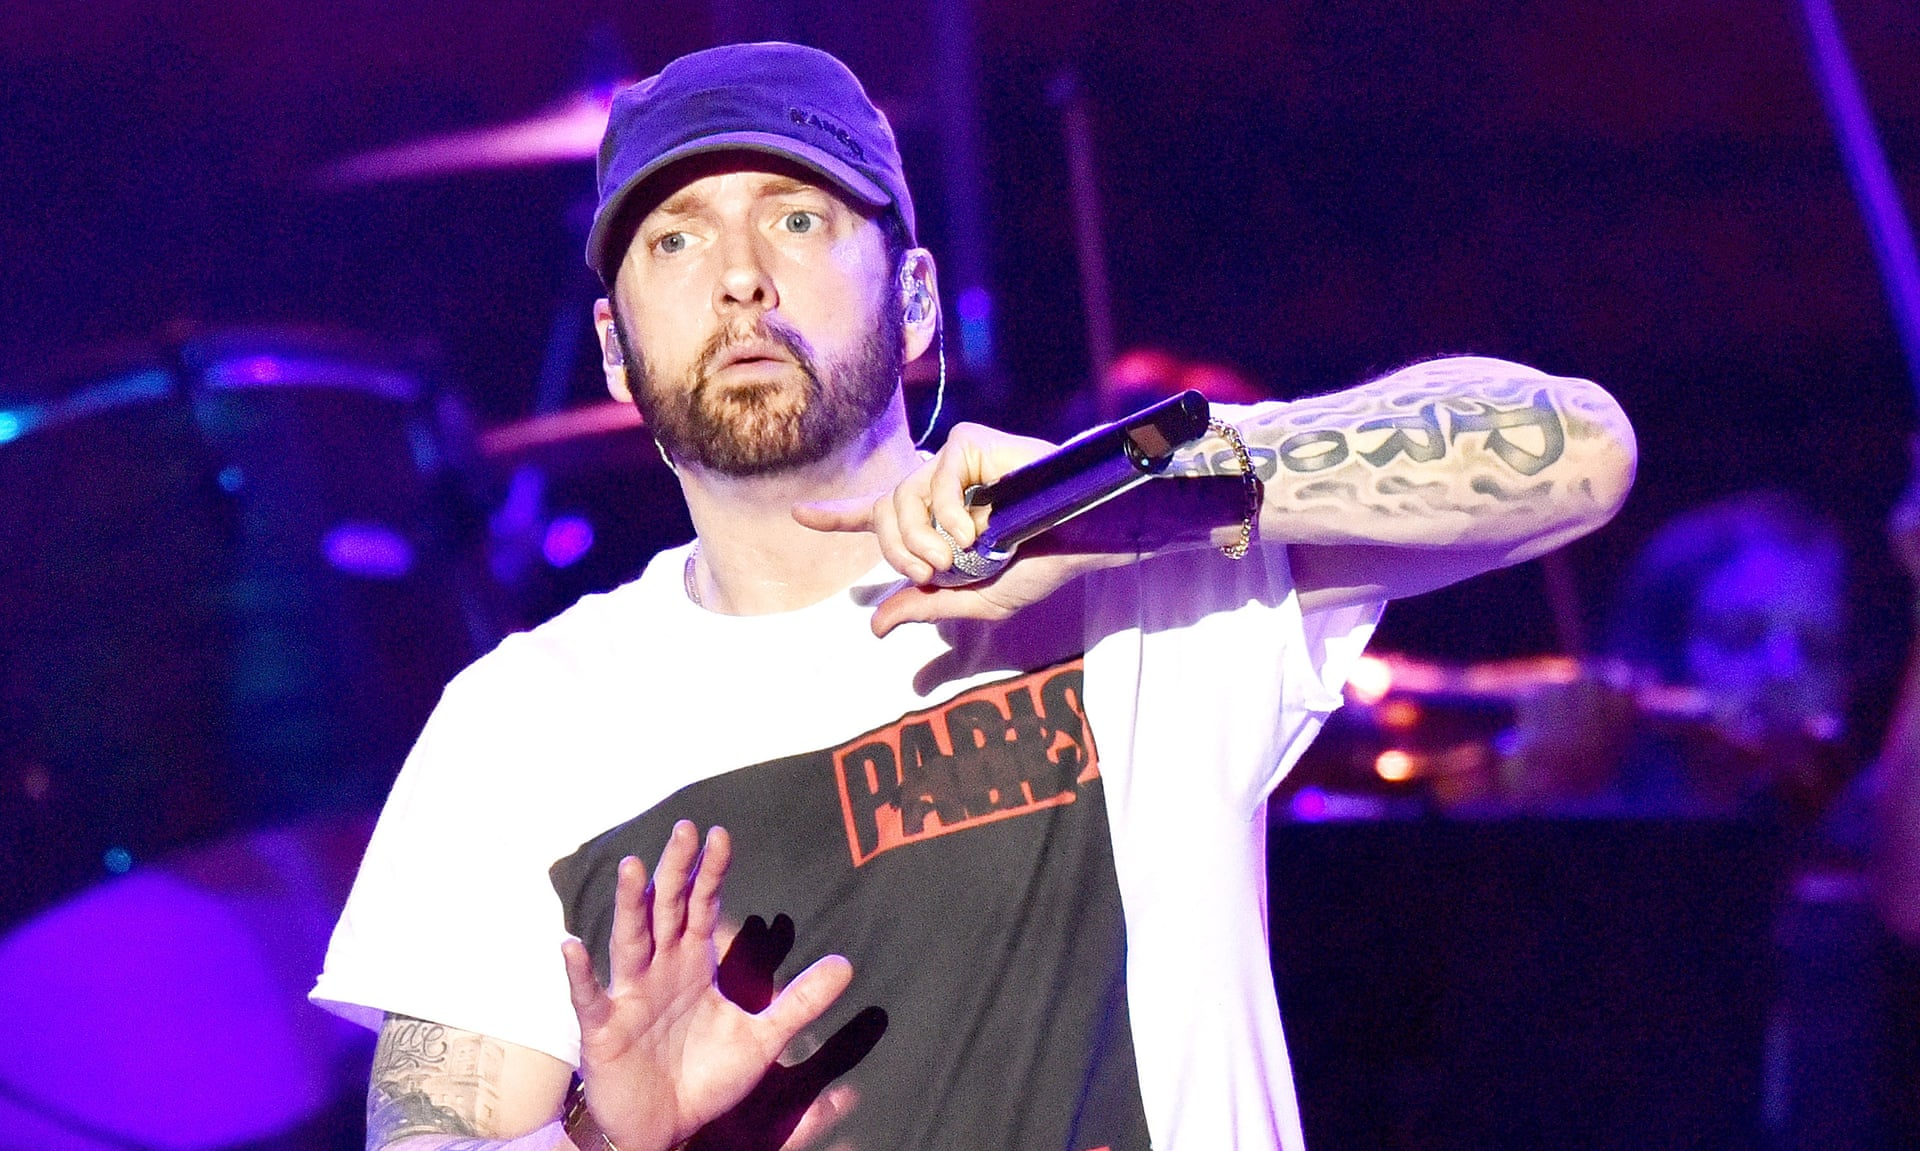 Eminem Faces Backlash Over His Bombing Remark From Manchester Officials